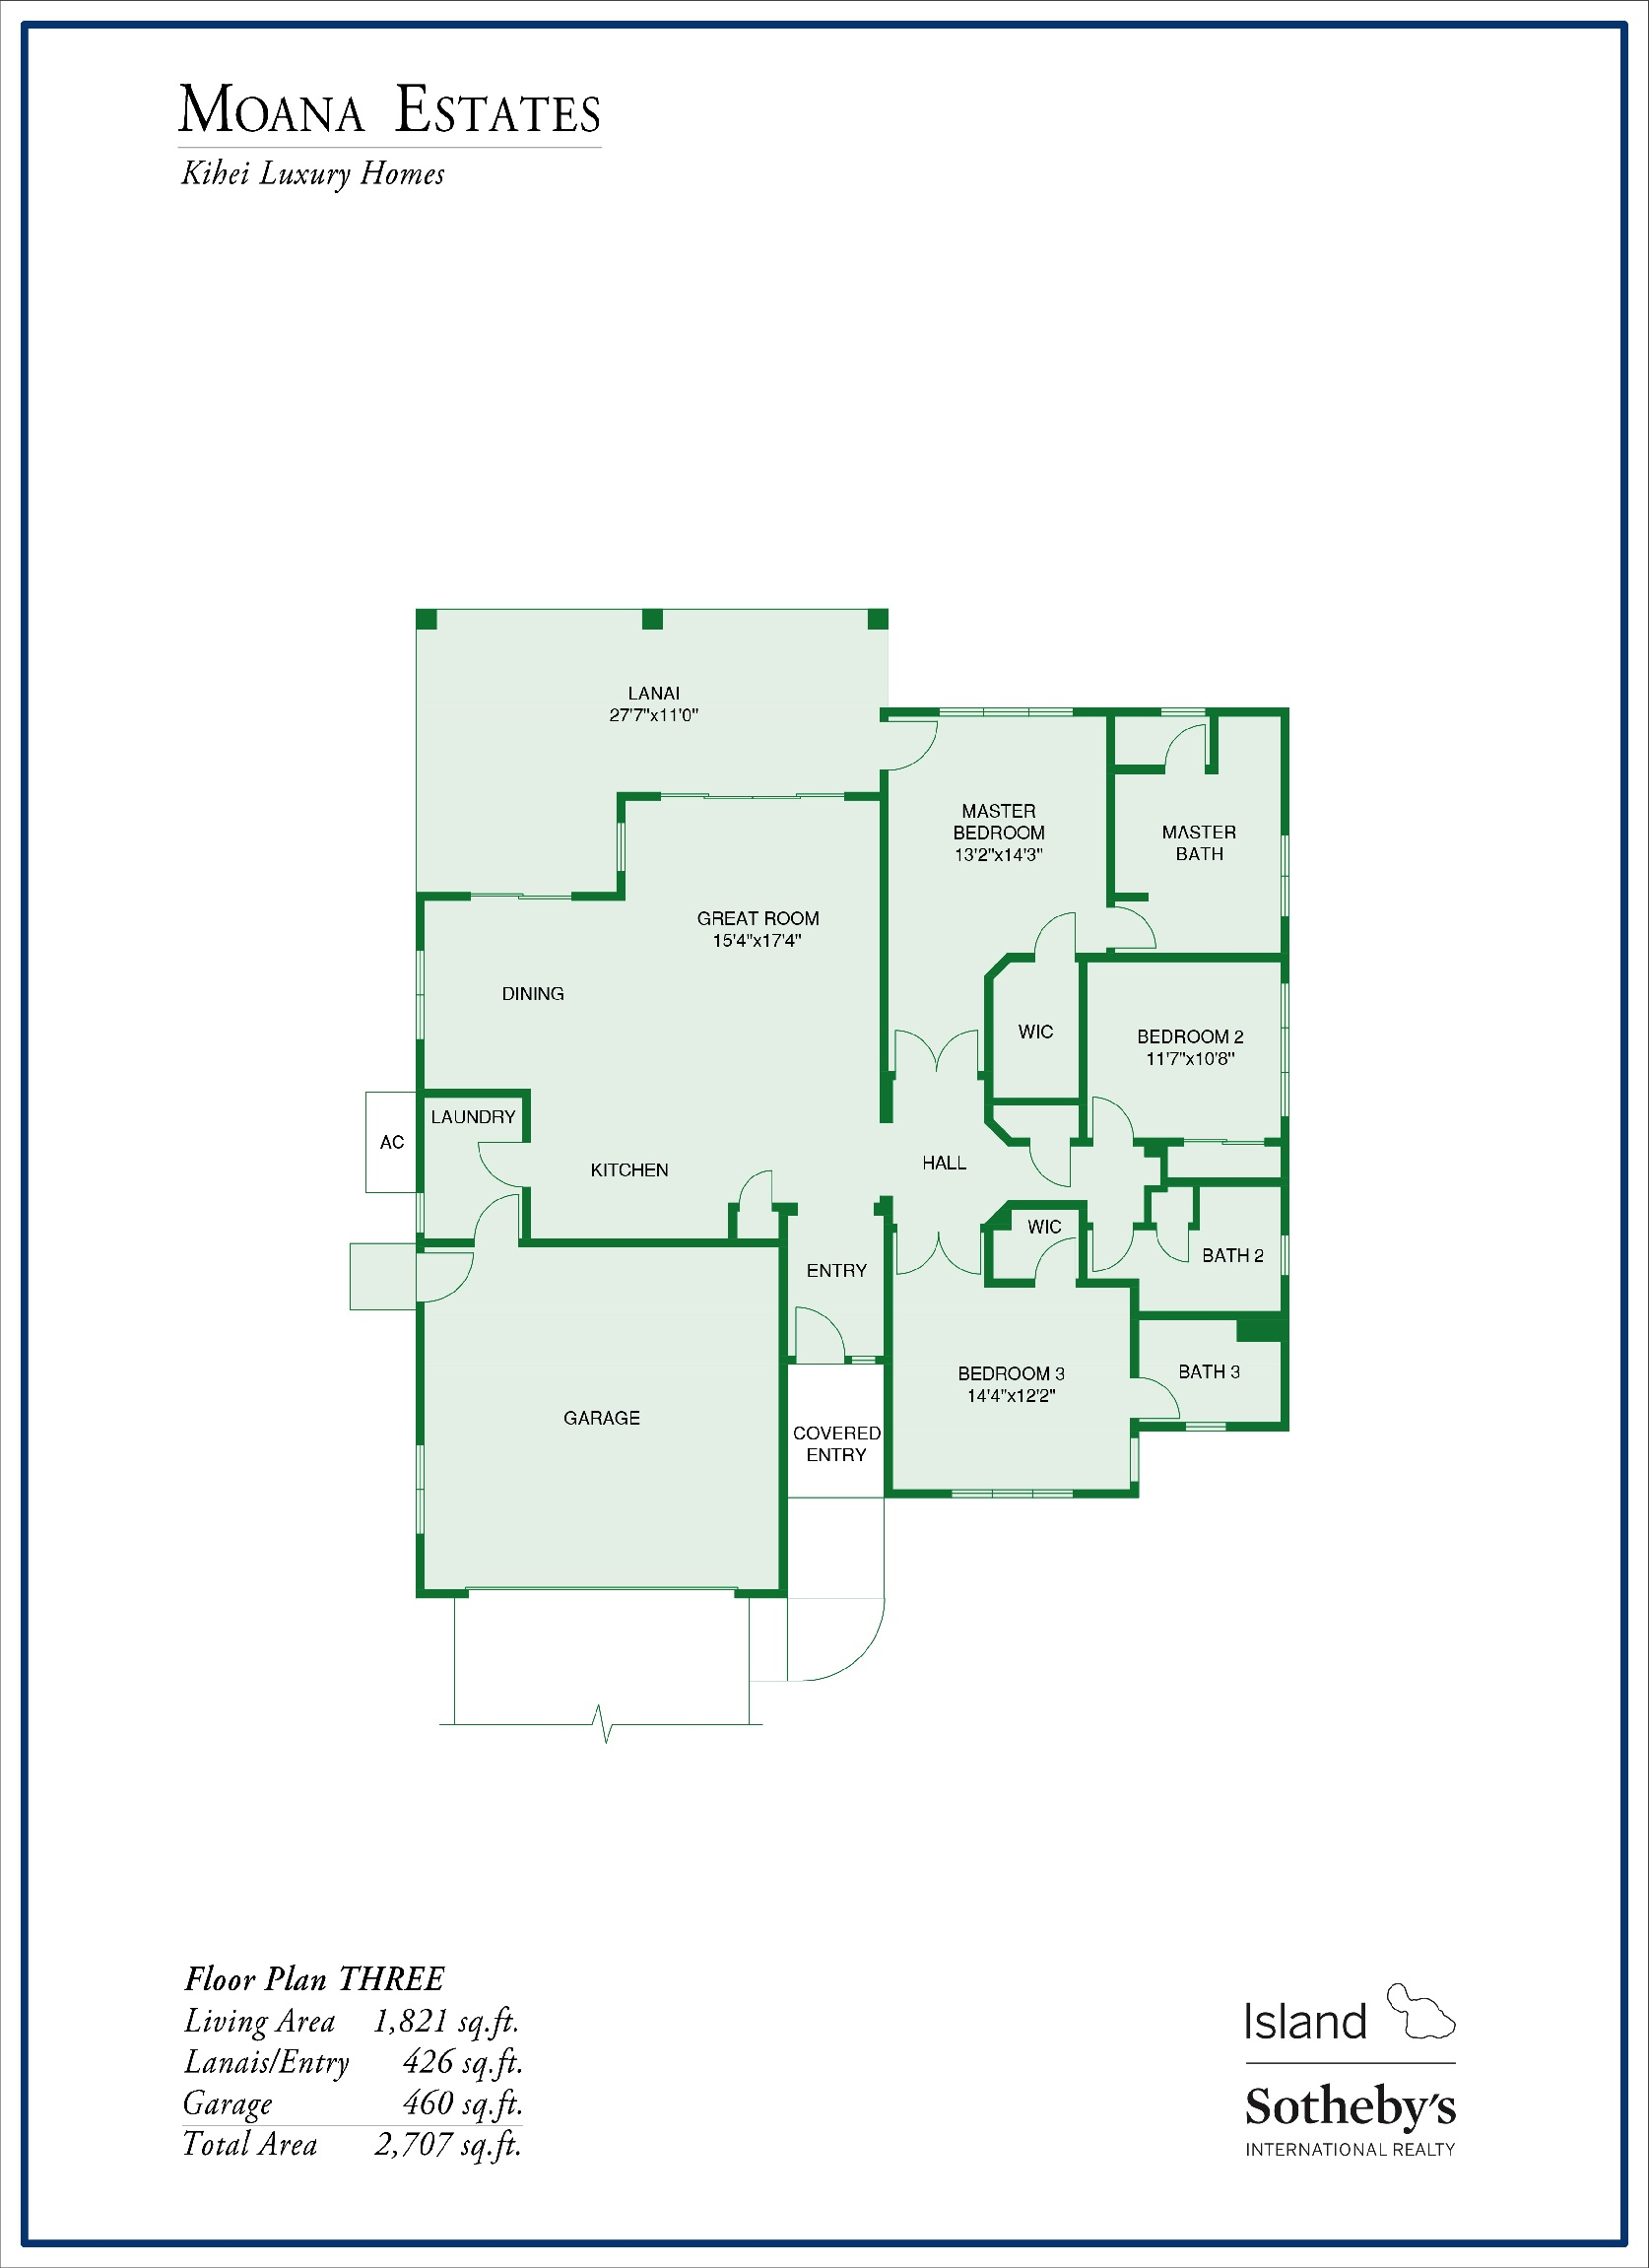 Moana Estates Floor Plan 3